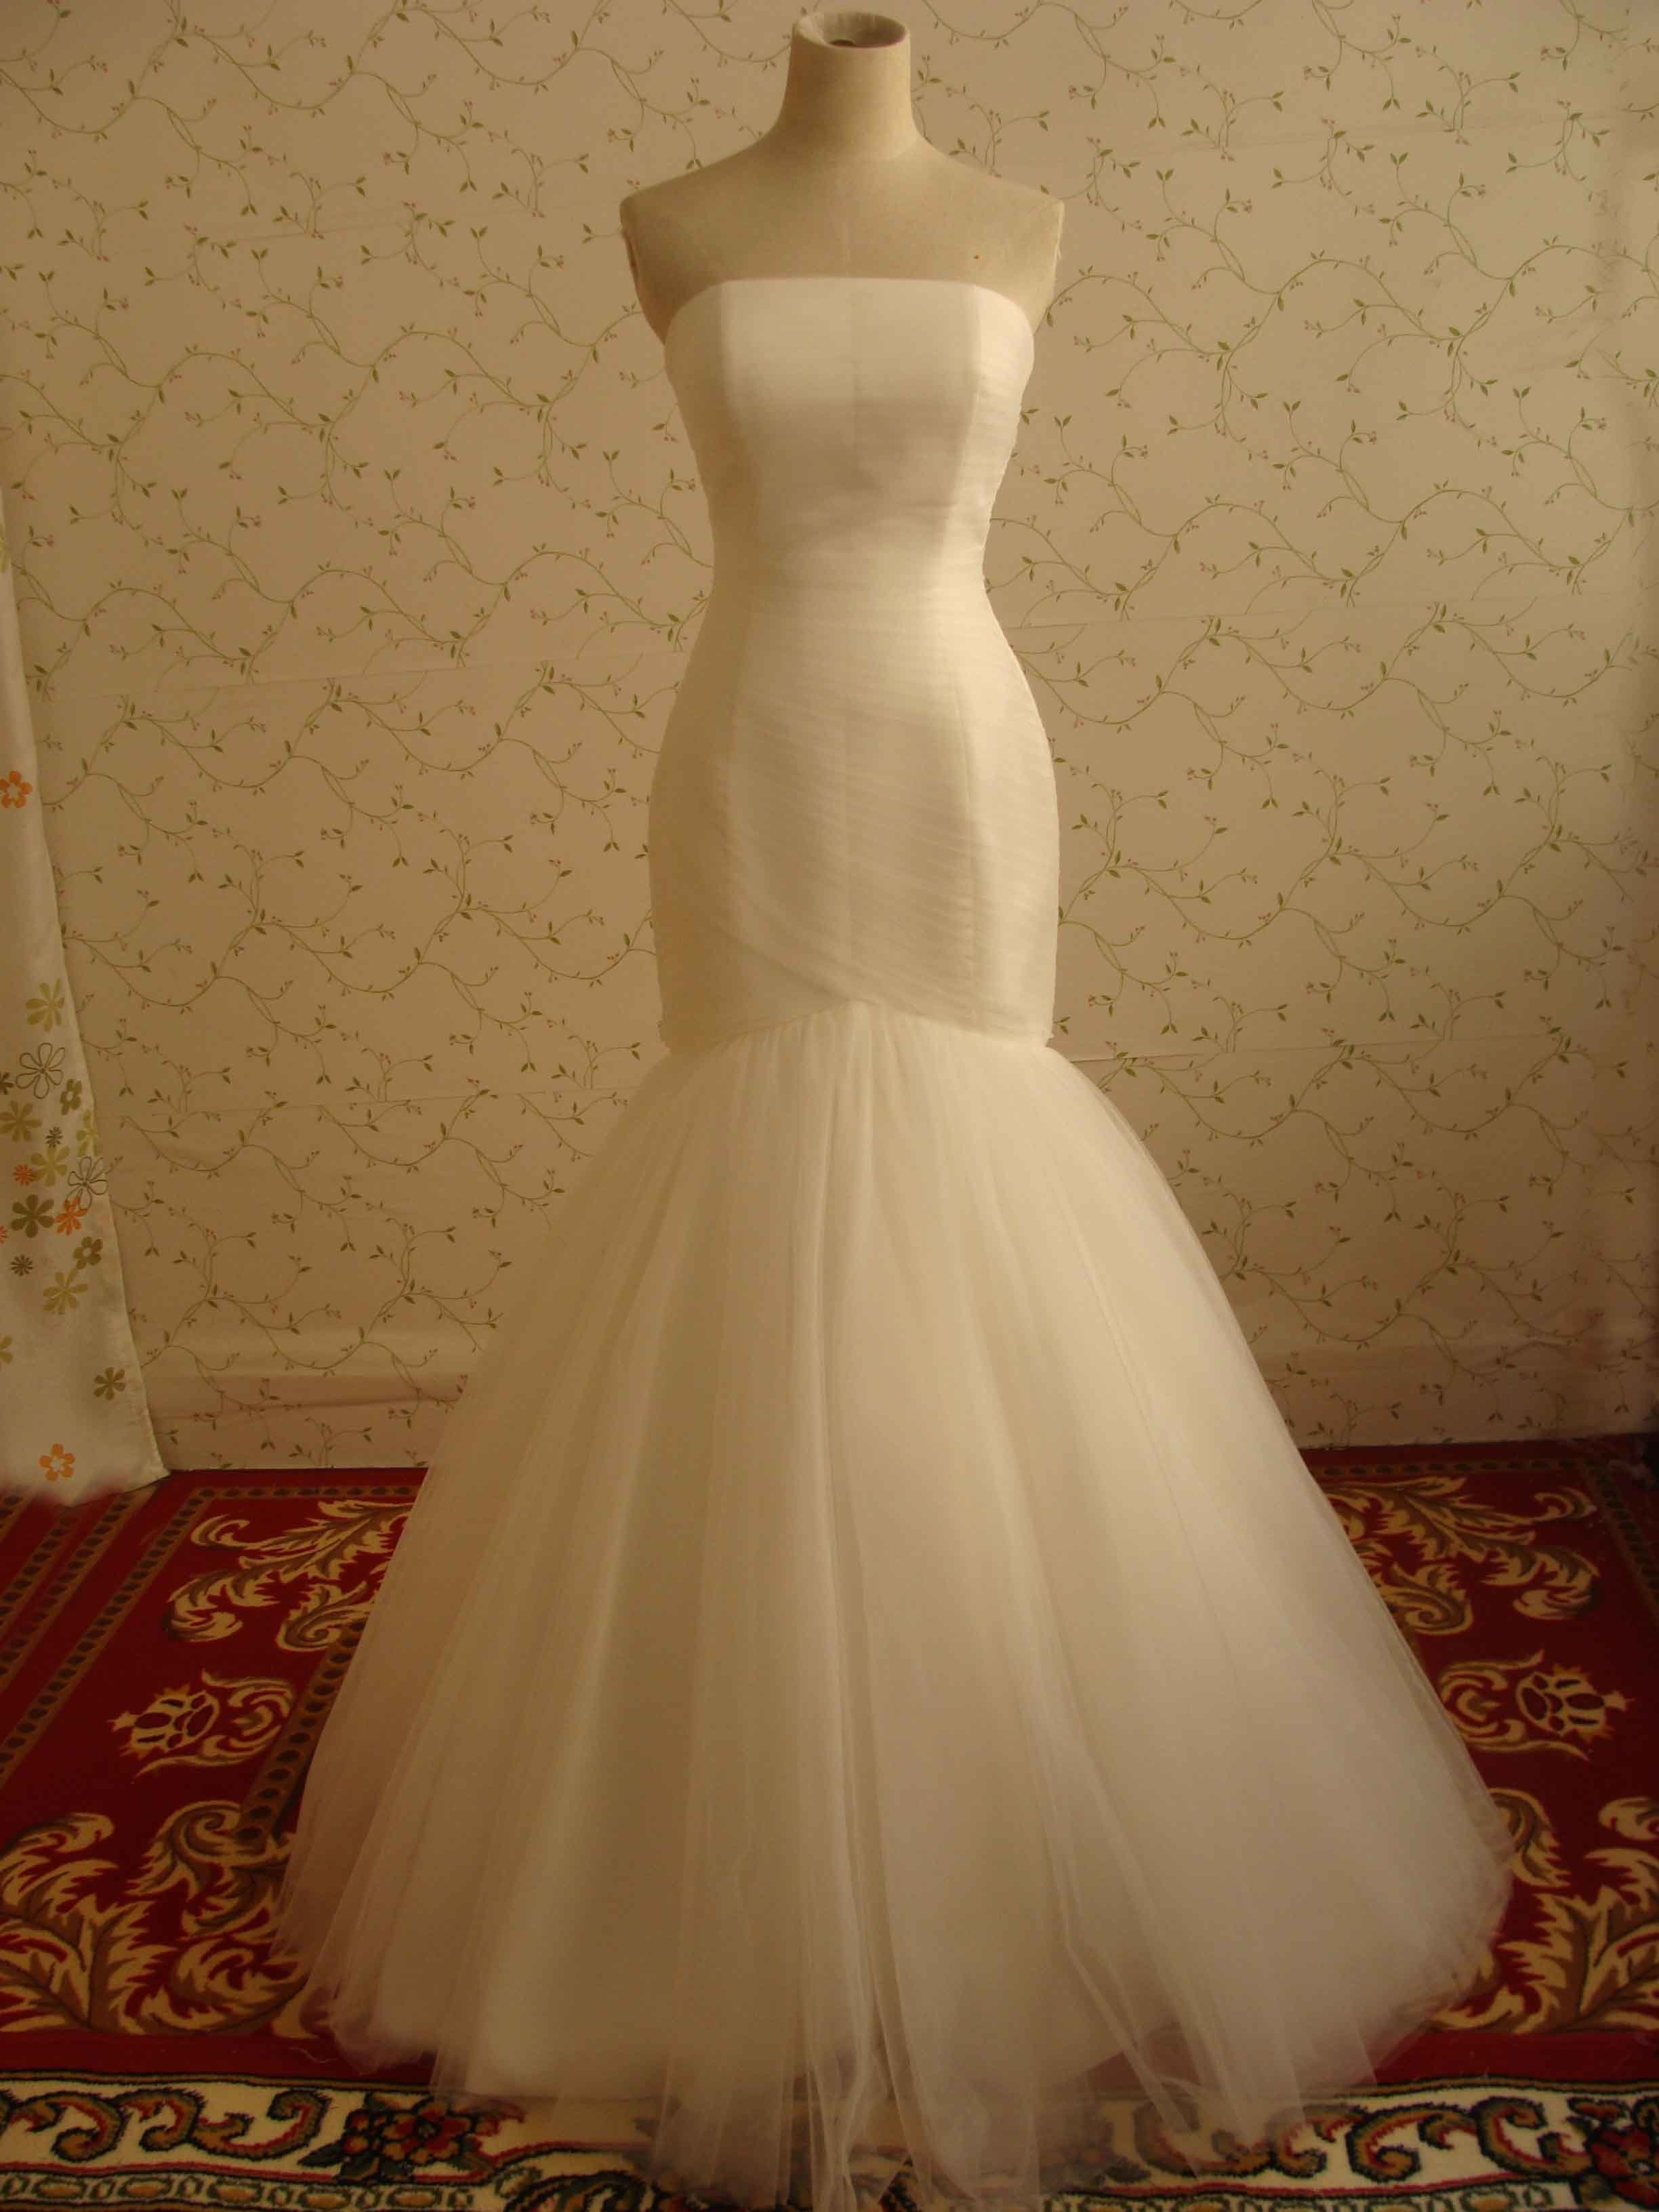 A Fishtail Wedding Dress : China real fishtail wedding dress rd